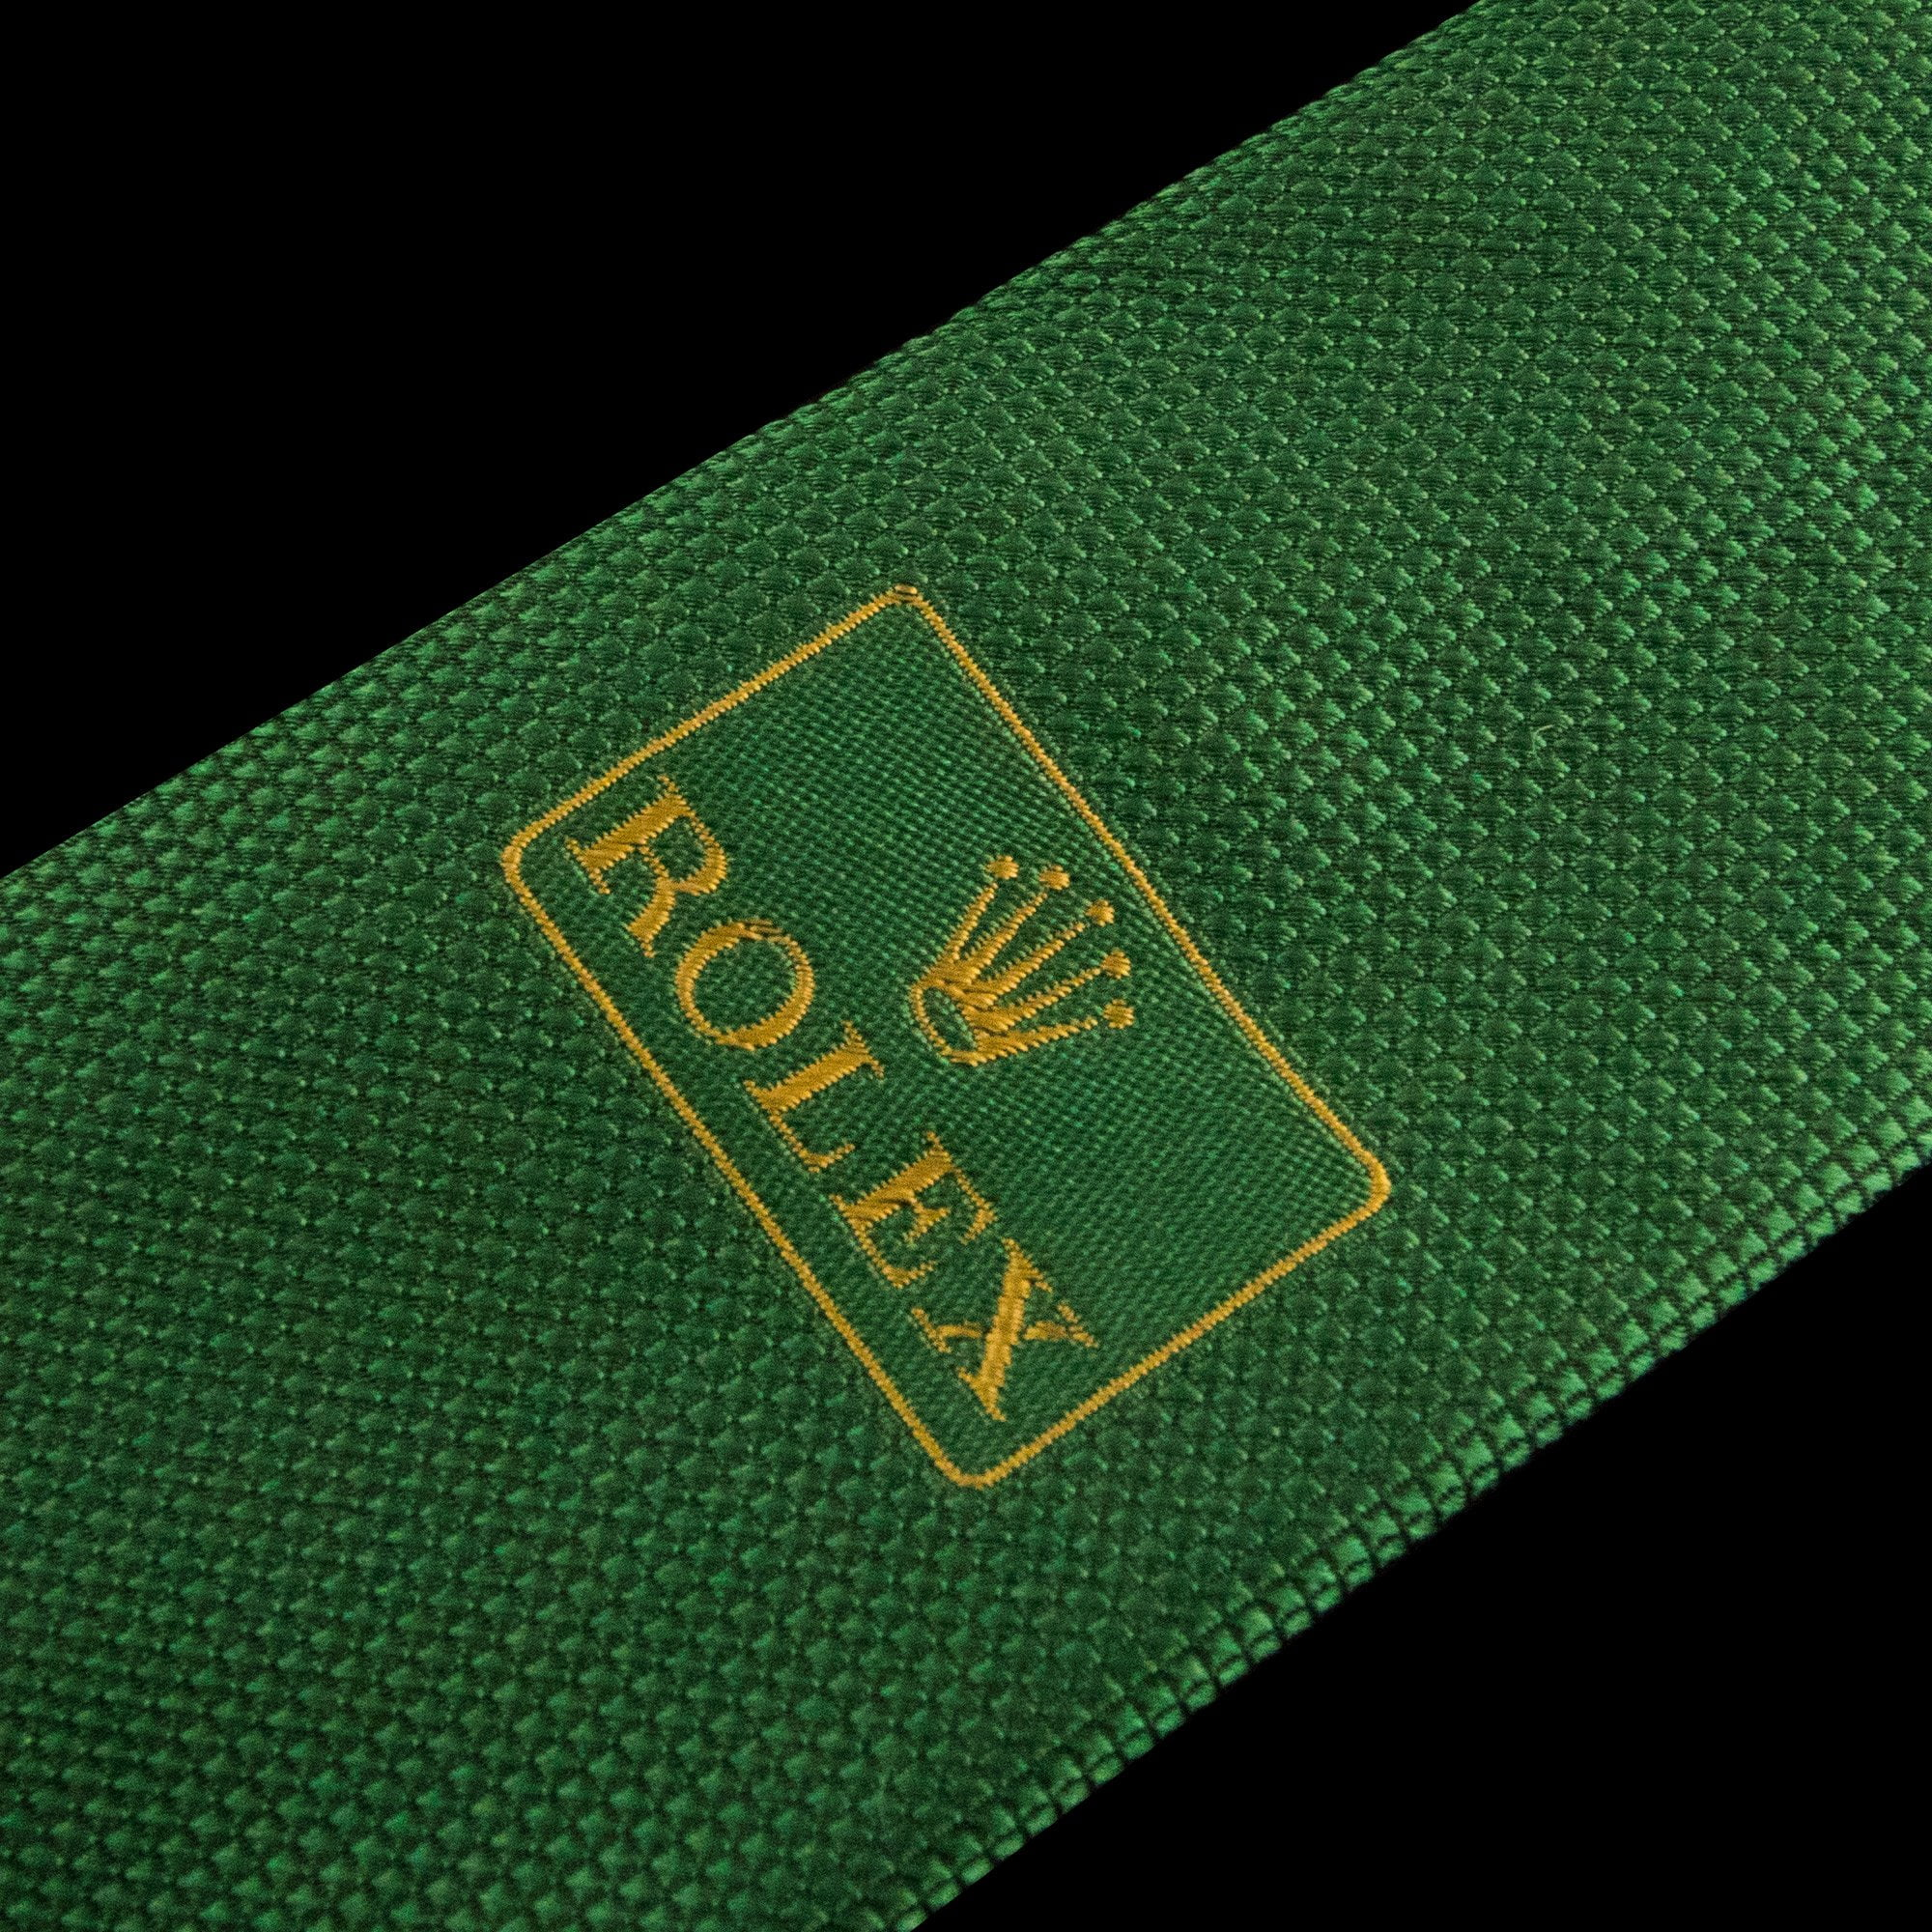 Rolex Tie Amsterdam Vintage Watches